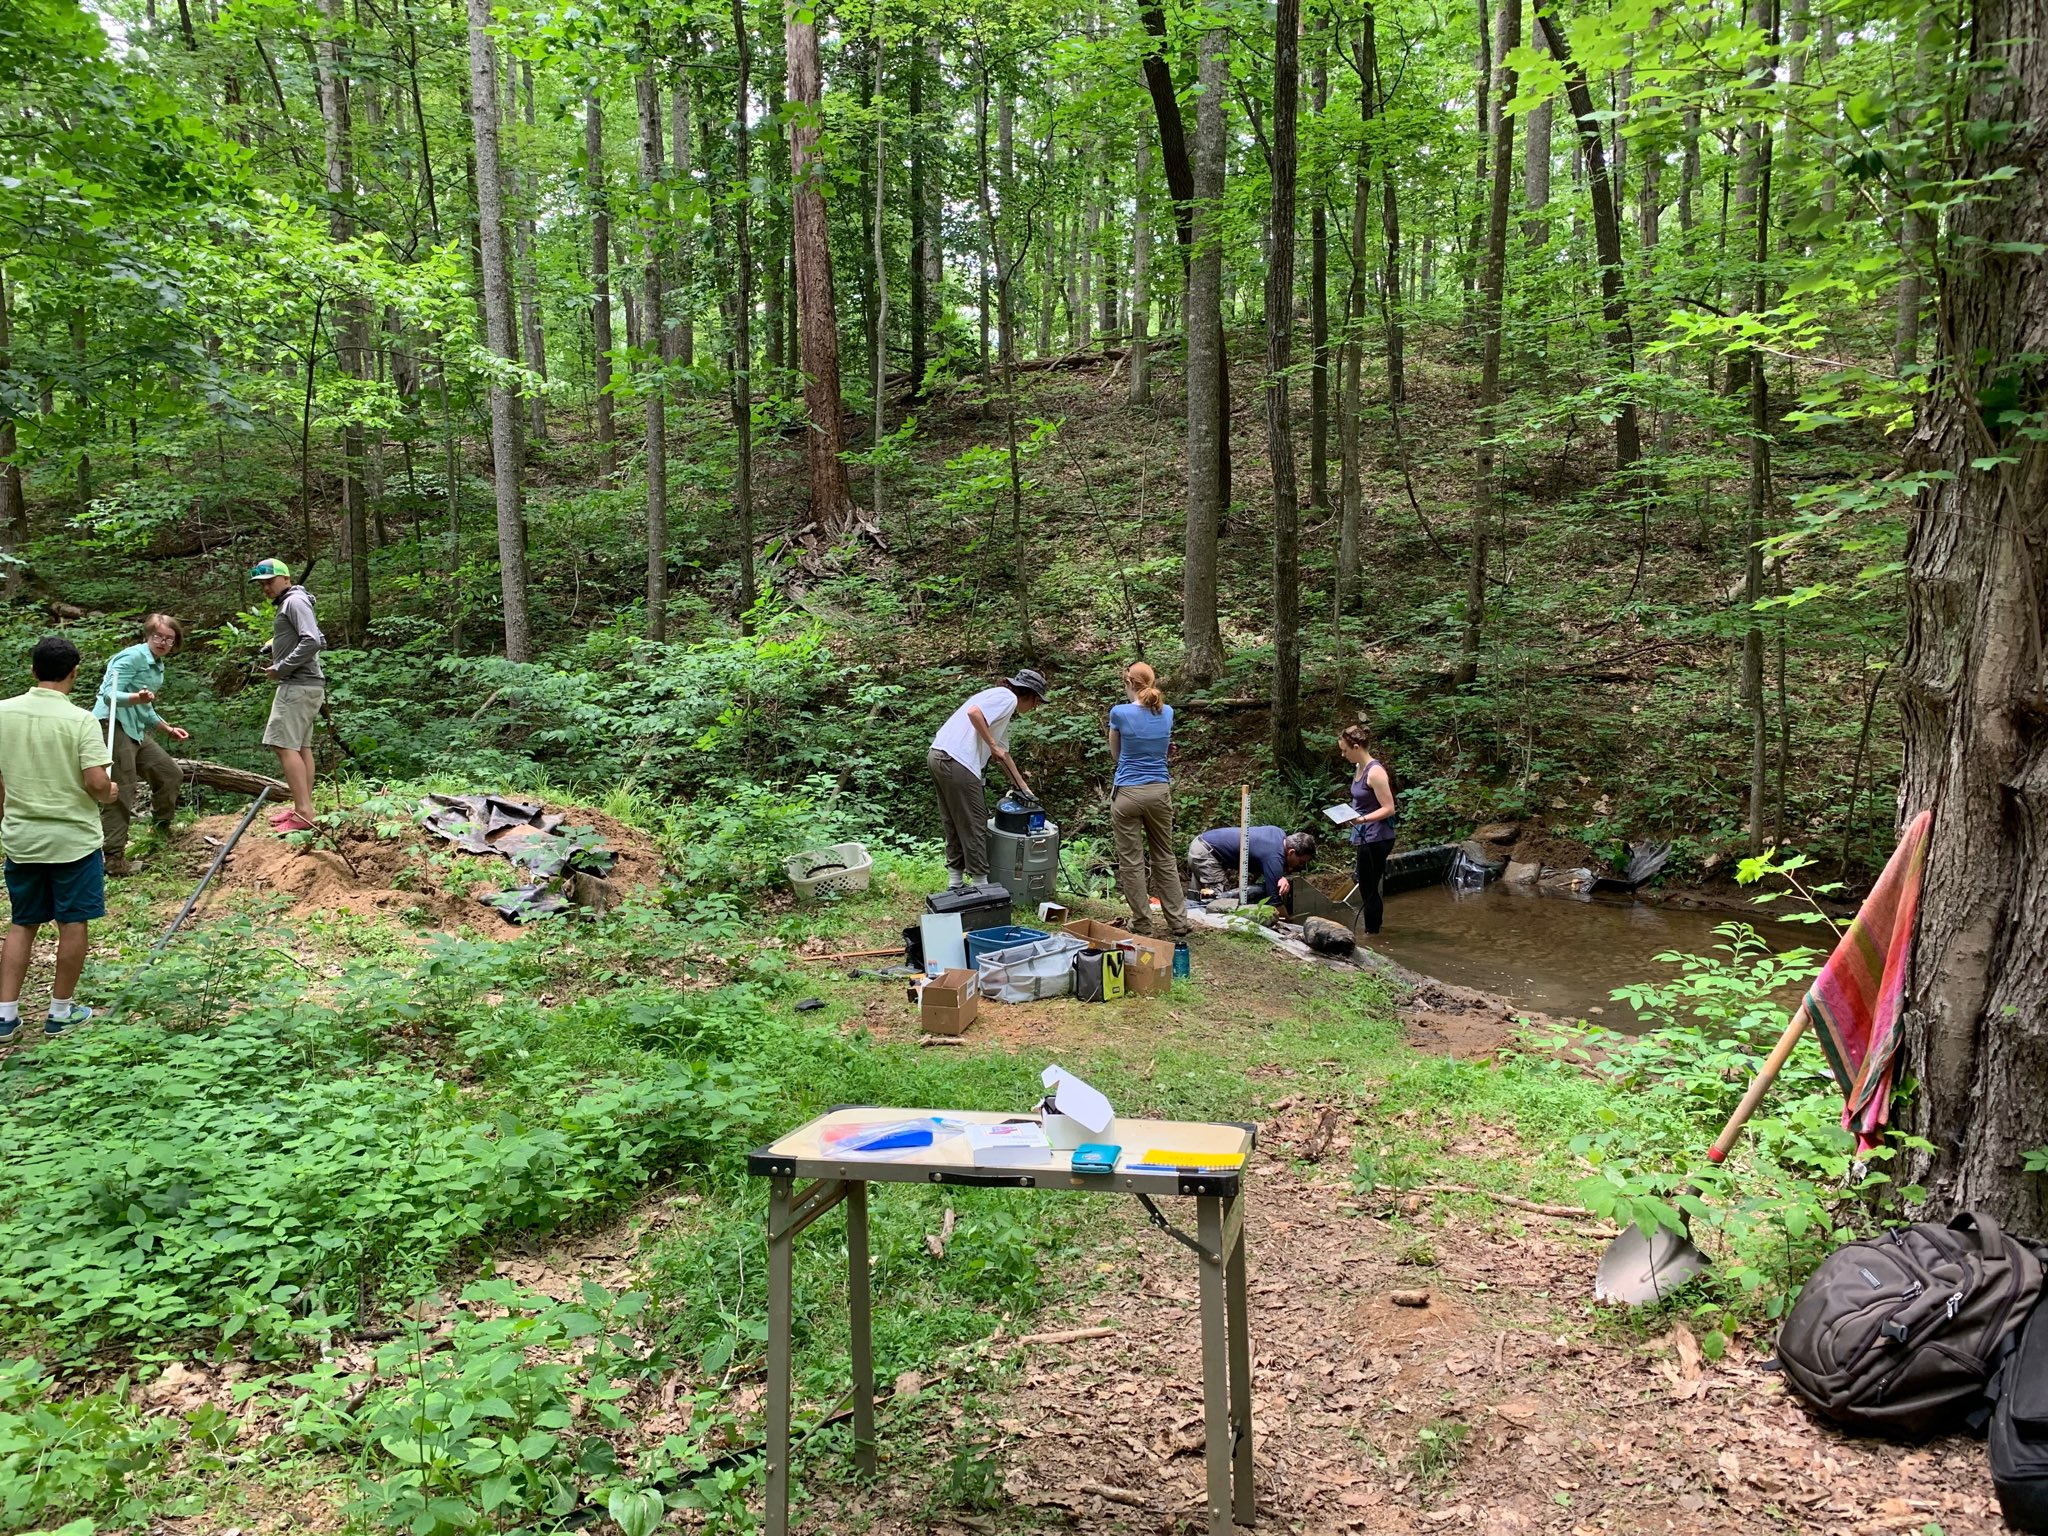 All hands on deck for deploying the new weir, ISCO, & telemetry for our sensor gateway! ⁦@VT_Biology⁩ ⁦@vtgeosciences⁩ ⁦@whittercritterr⁩ ⁦@ryan_mclake⁩ ⁦@Seashells1111⁩ ⁦@planktongirl16⁩ ⁦@MEL_Phytos⁩ ⁦@DexterHoward77⁩